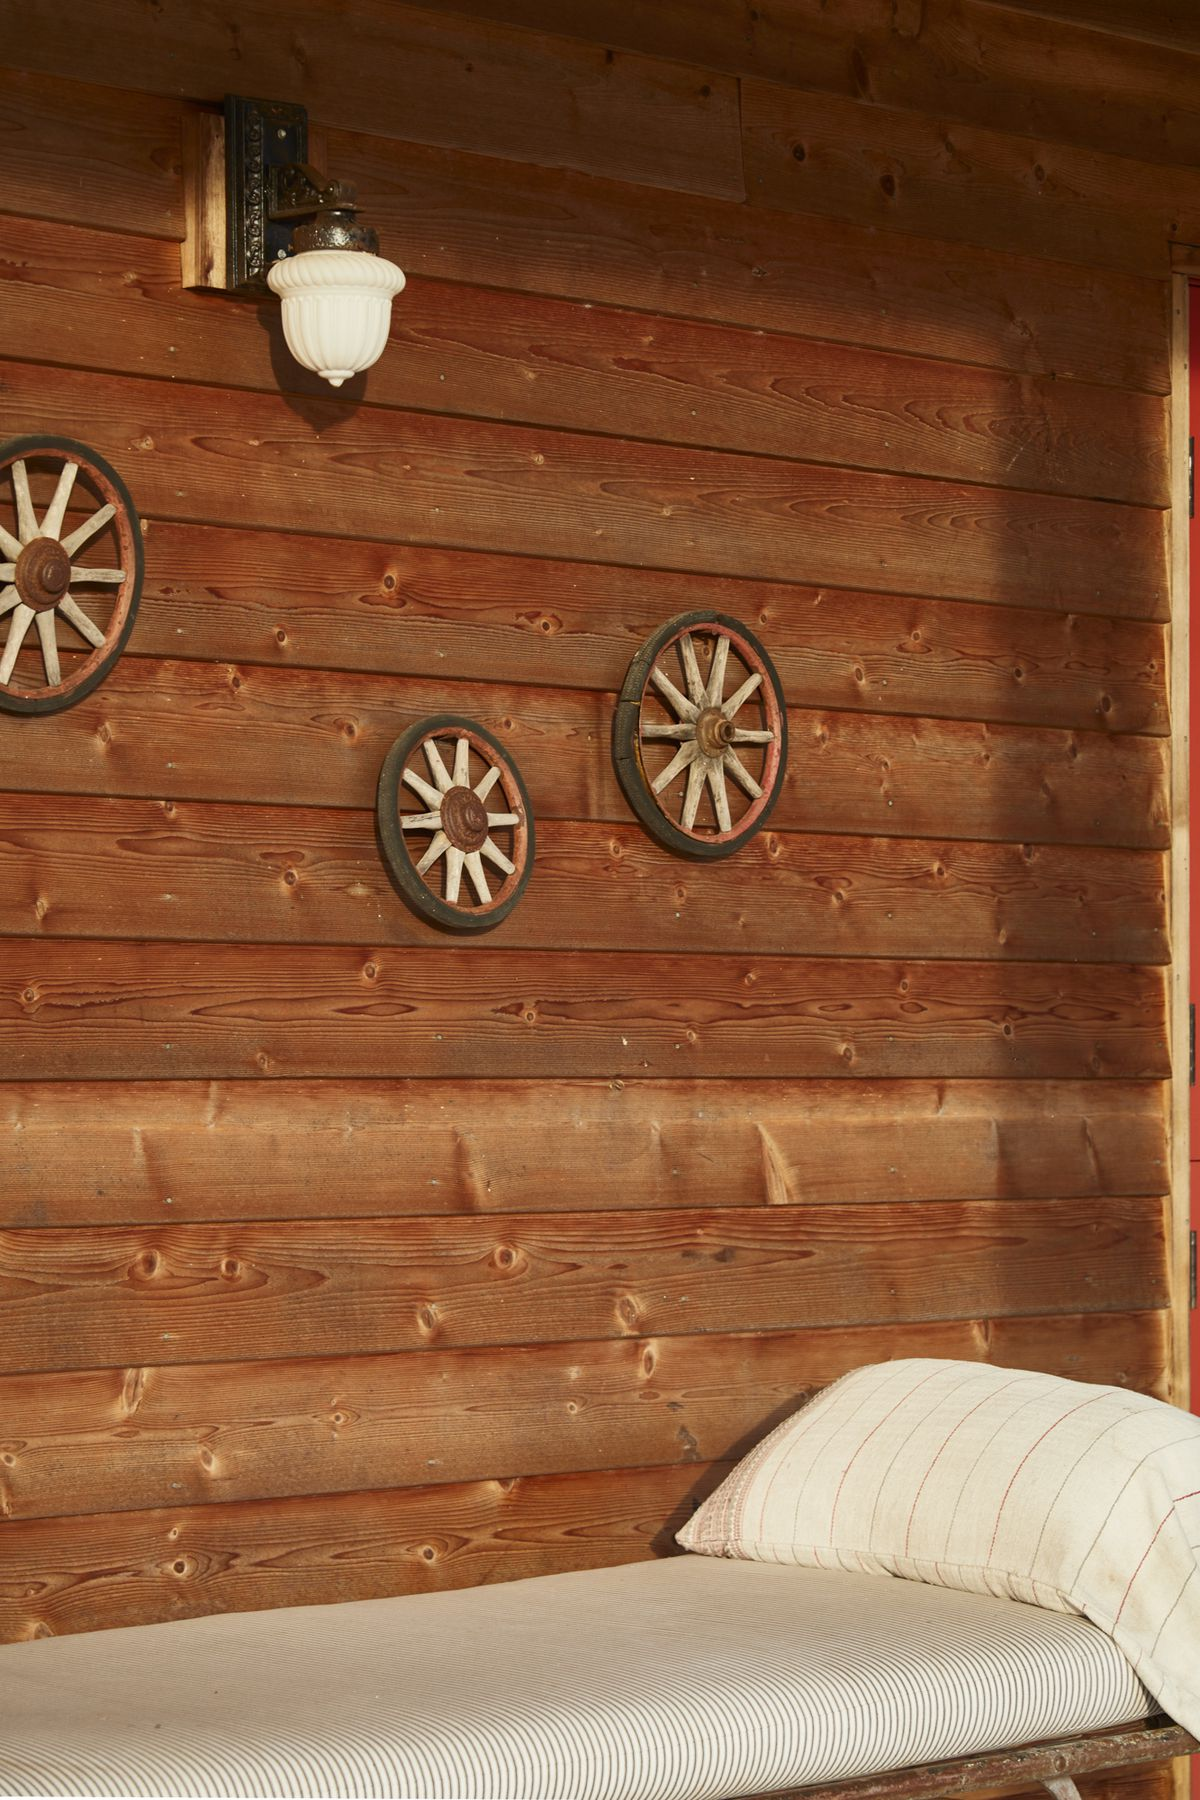 Another detail shot shows the wood siding on the guest wing. Small wagon wheels and an antique light fixture decorate the walls.